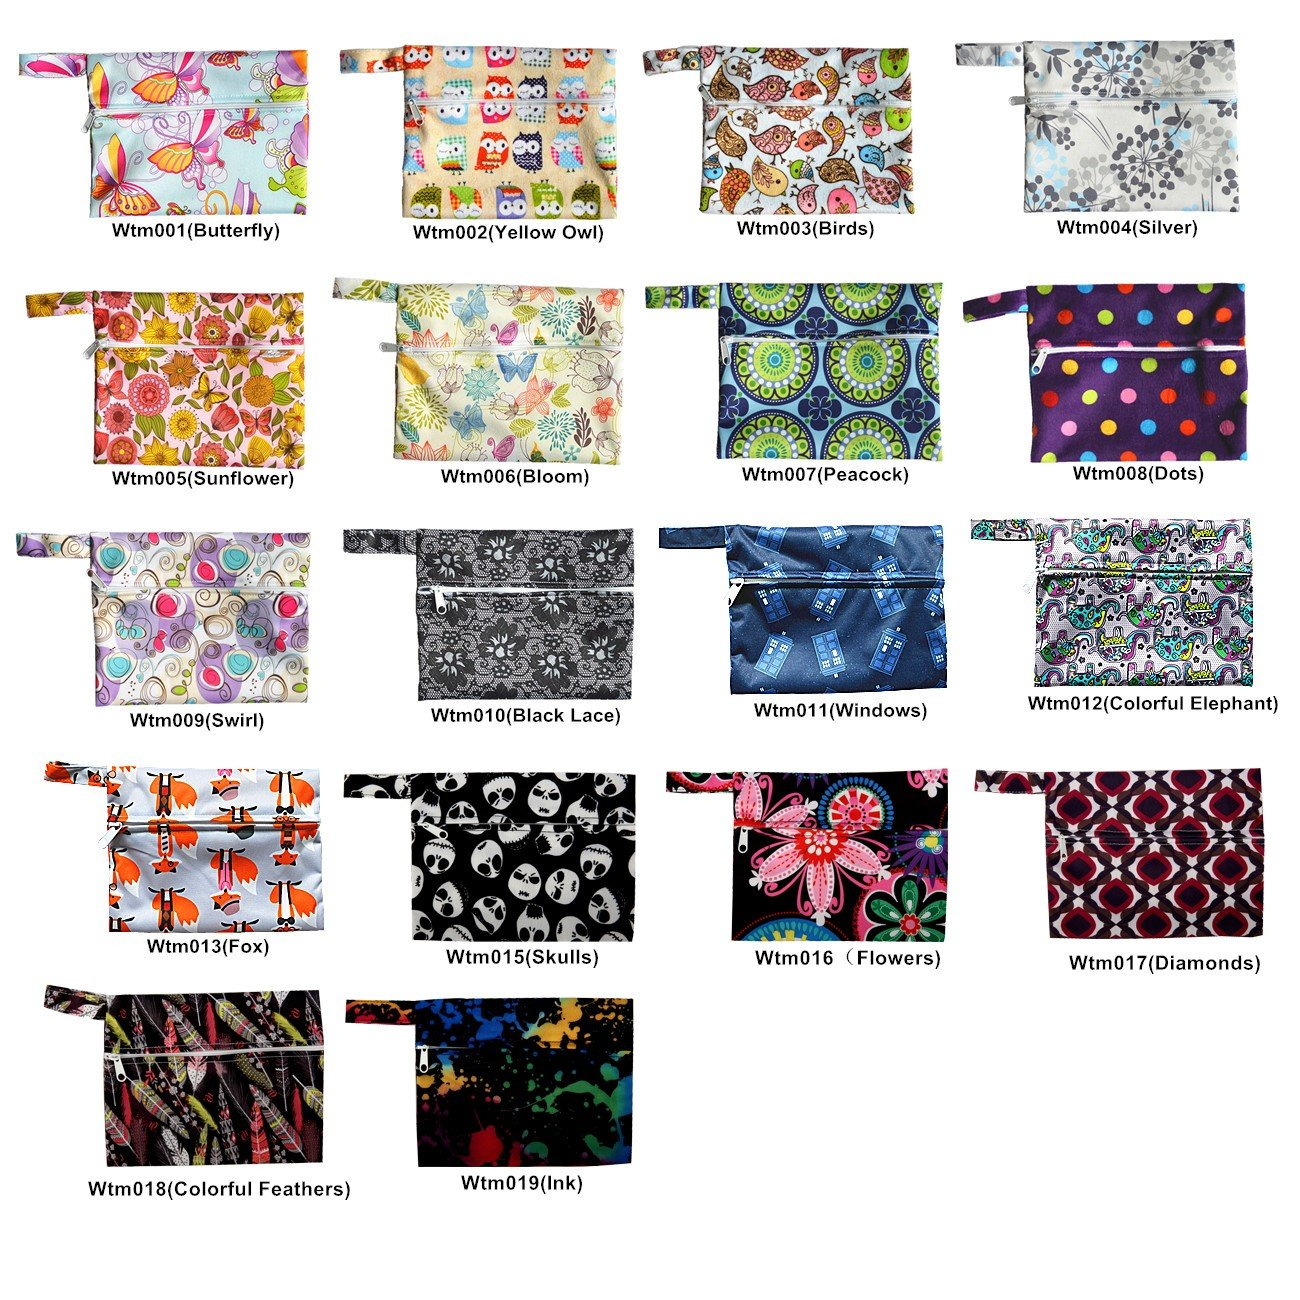 "24 Pack Mini/small Wet Bags for Mama Cloth Menstrual Pads Tampon, Baby Bib,waterproof Reusable, 20 Designs, 7"" X 5.5"" 81C2Q7GBv2L"